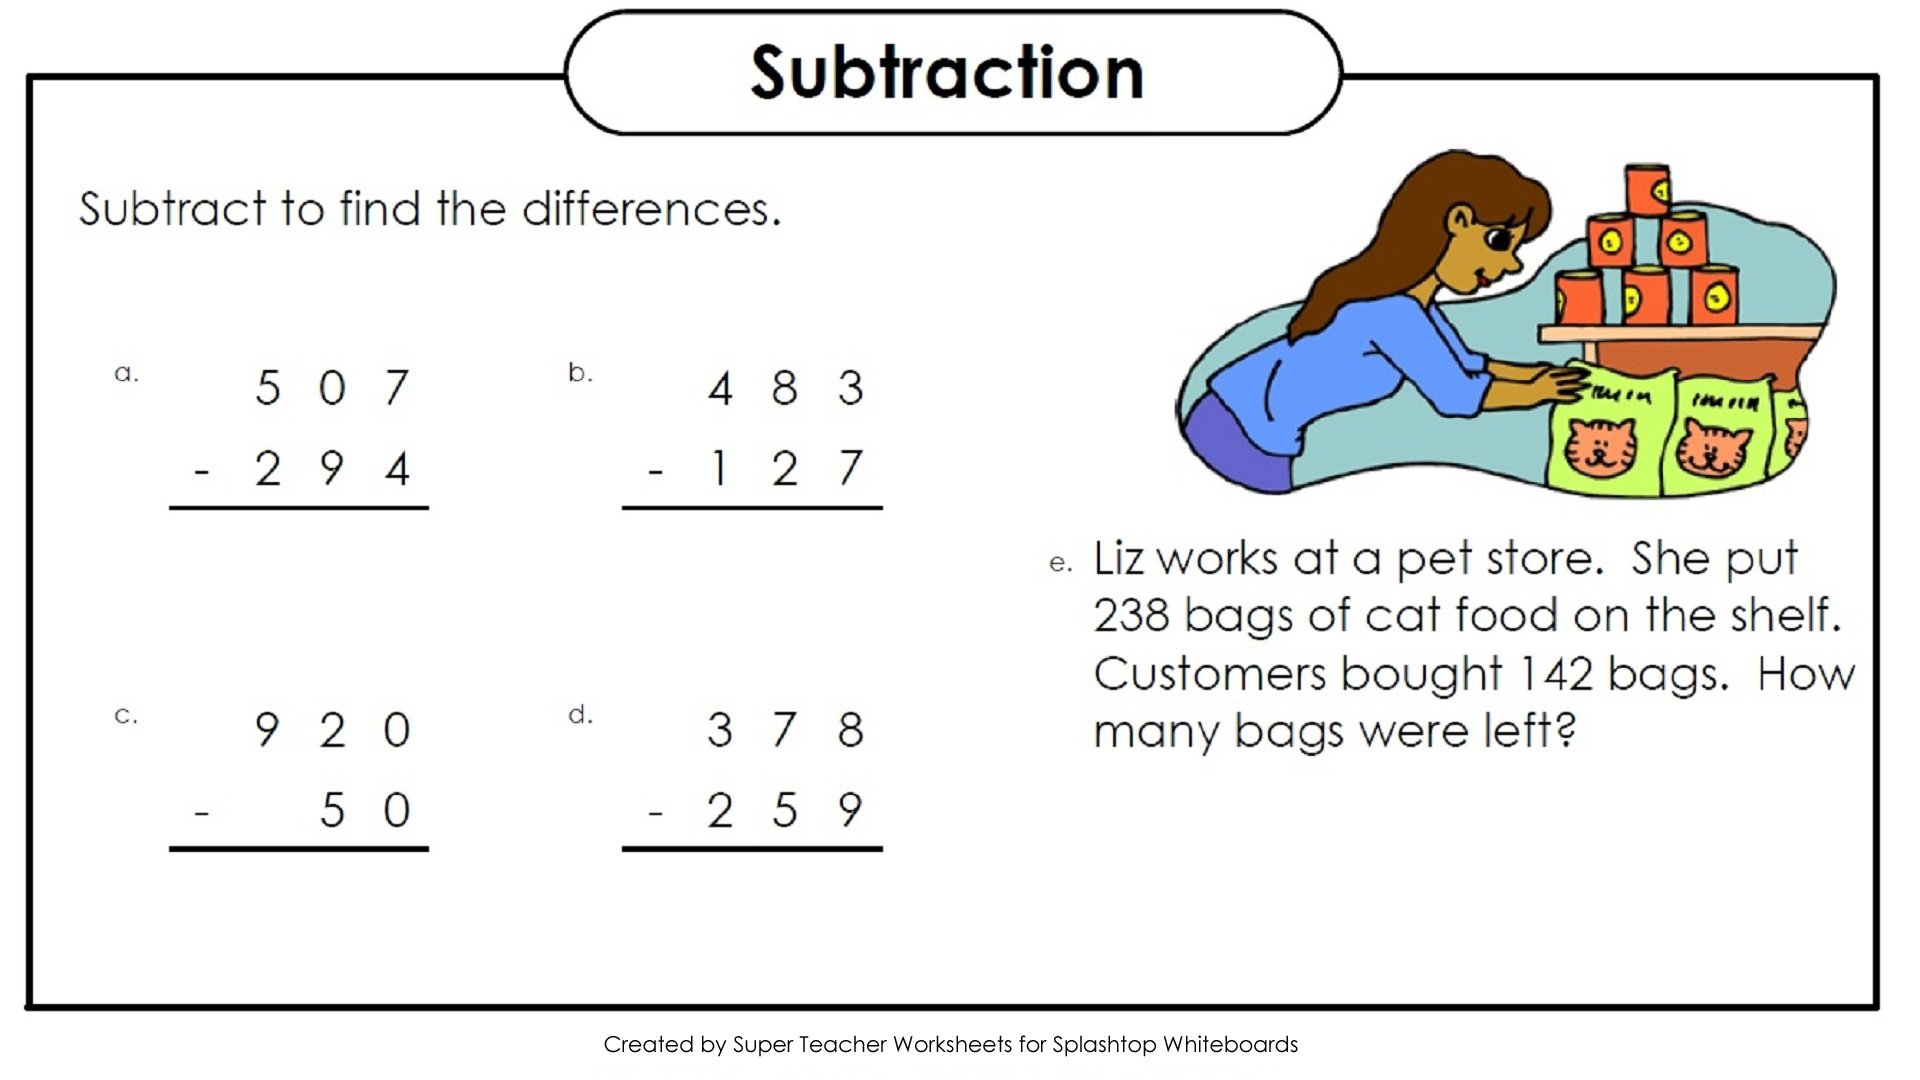 math worksheet : splashtop whiteboard background graphics : Subtracting Three Digit Numbers With Regrouping Worksheets